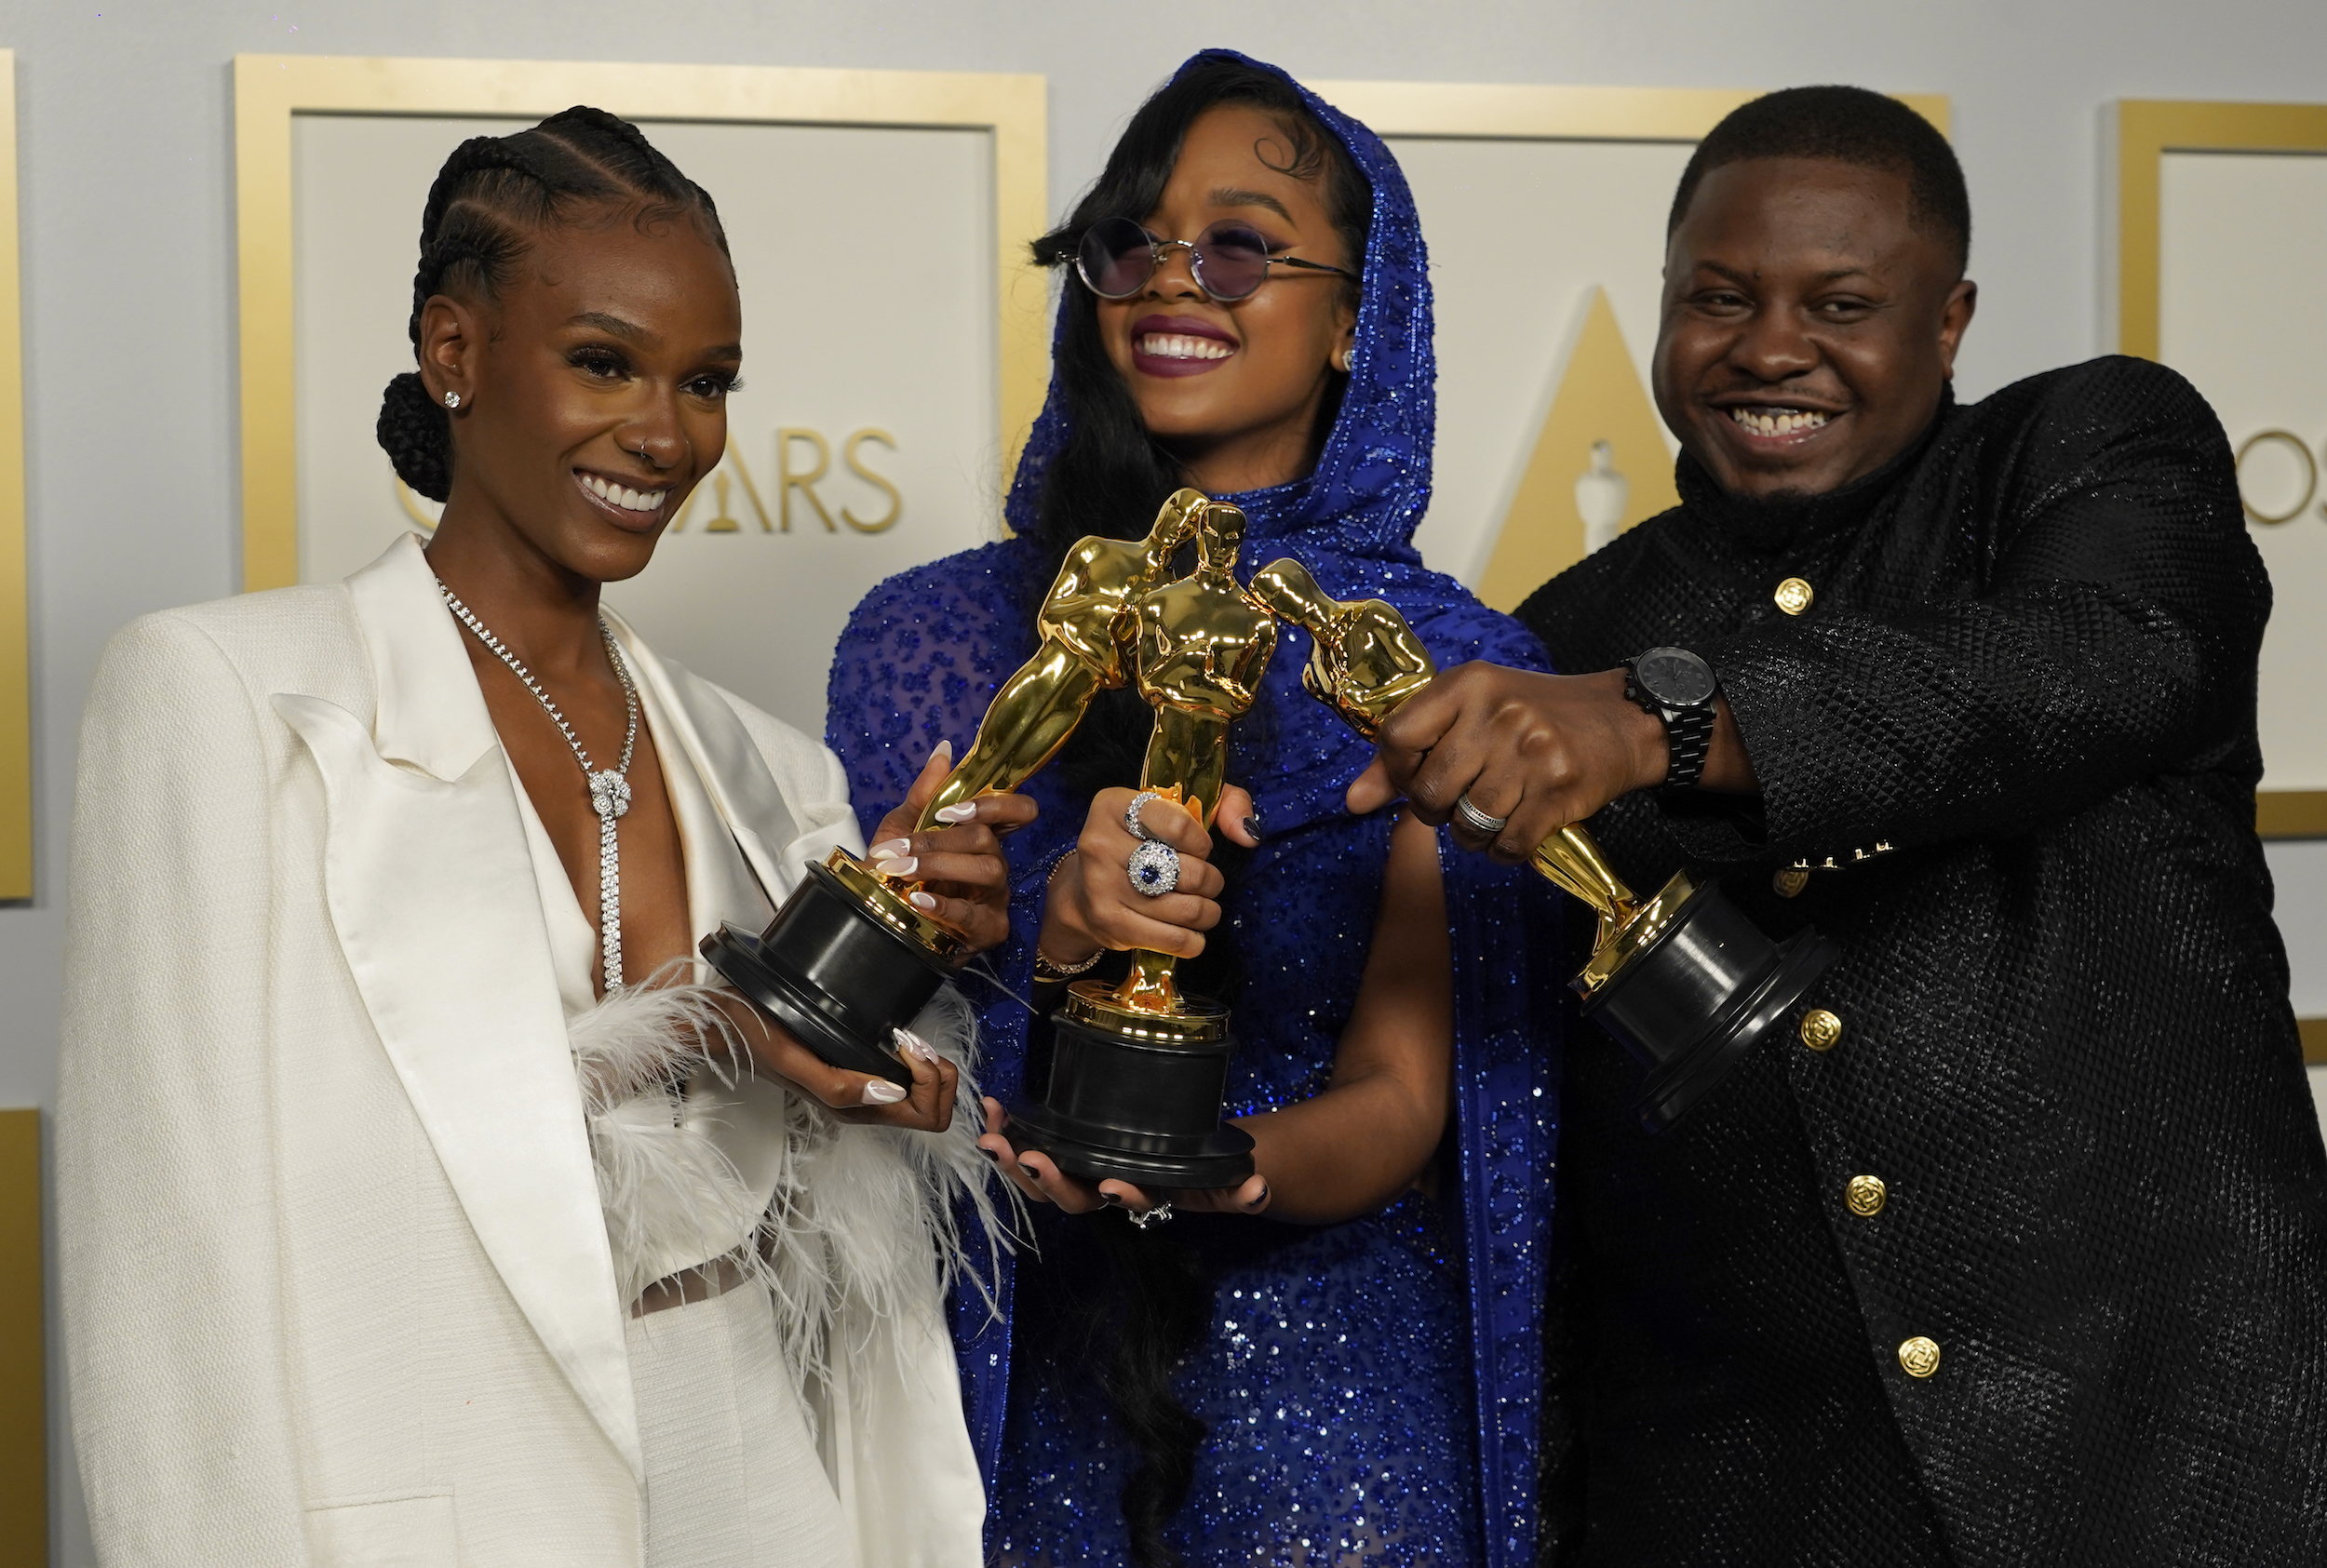 """Tiara Thomas, from left, H.E.R. and Dernst Emile II, winners of the award for best original song for """"Fight For You"""" from """"Judas and the Black Messiah,"""" pose in the press room at the Oscars on Sunday, April 25, 2021, at Union Station in Los Angeles. (AP Photo/Chris Pizzello, Pool)"""